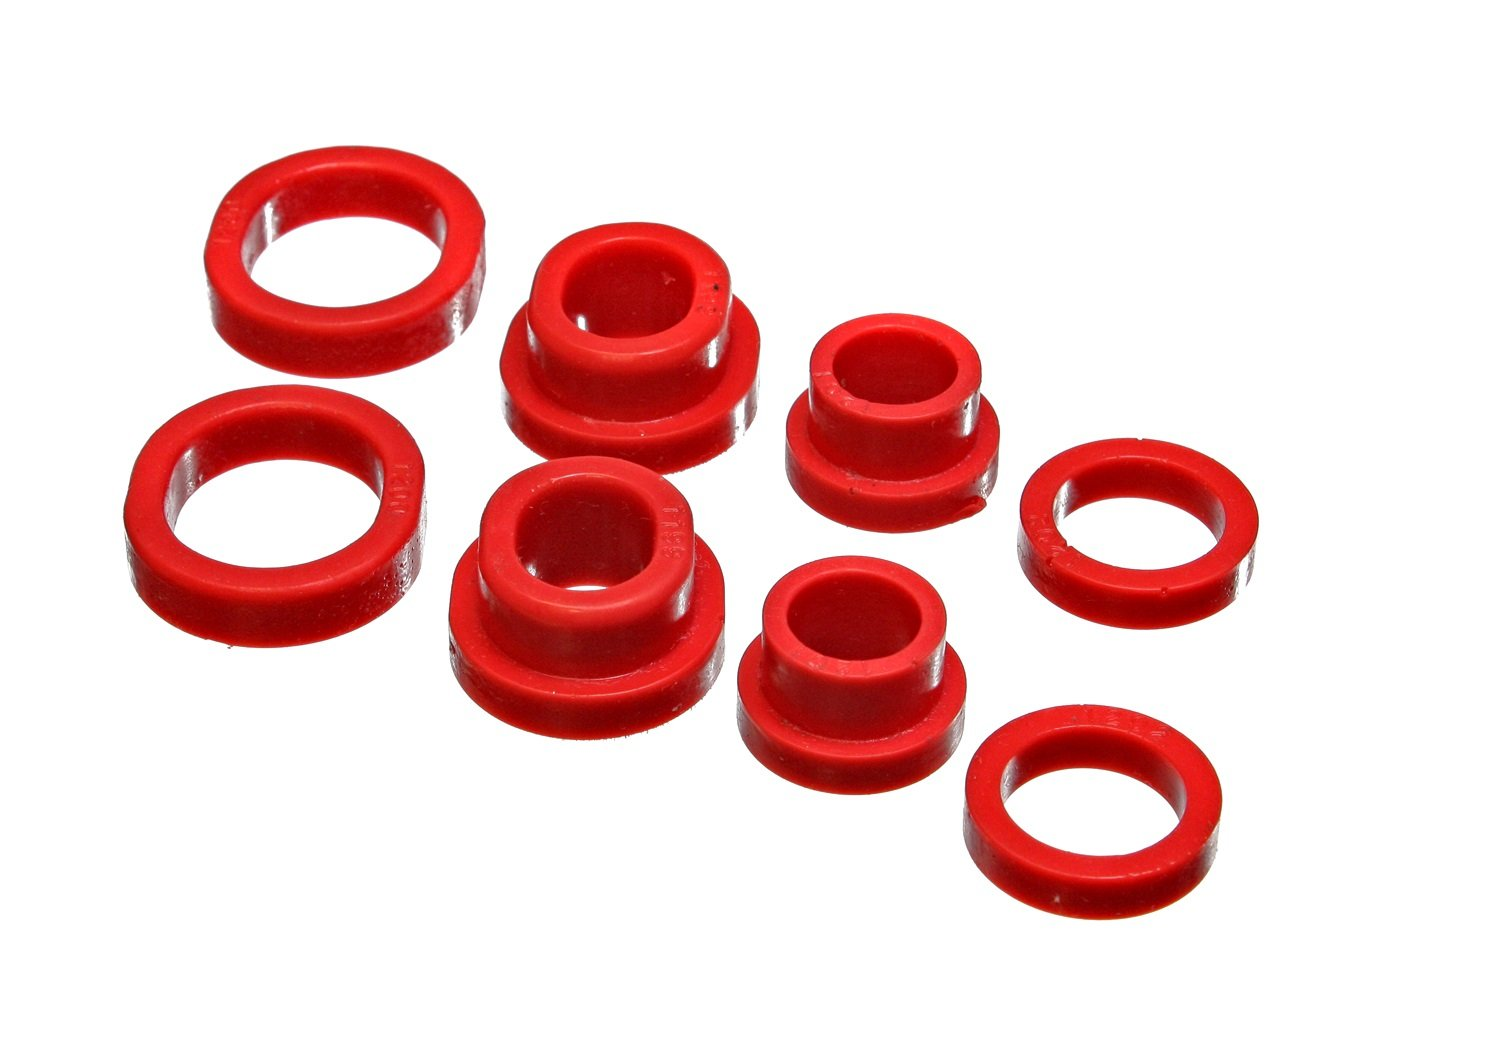 Energy Suspension 7.1116R Front Lower Subframe Bushing Set for Maxima by Energy Suspension